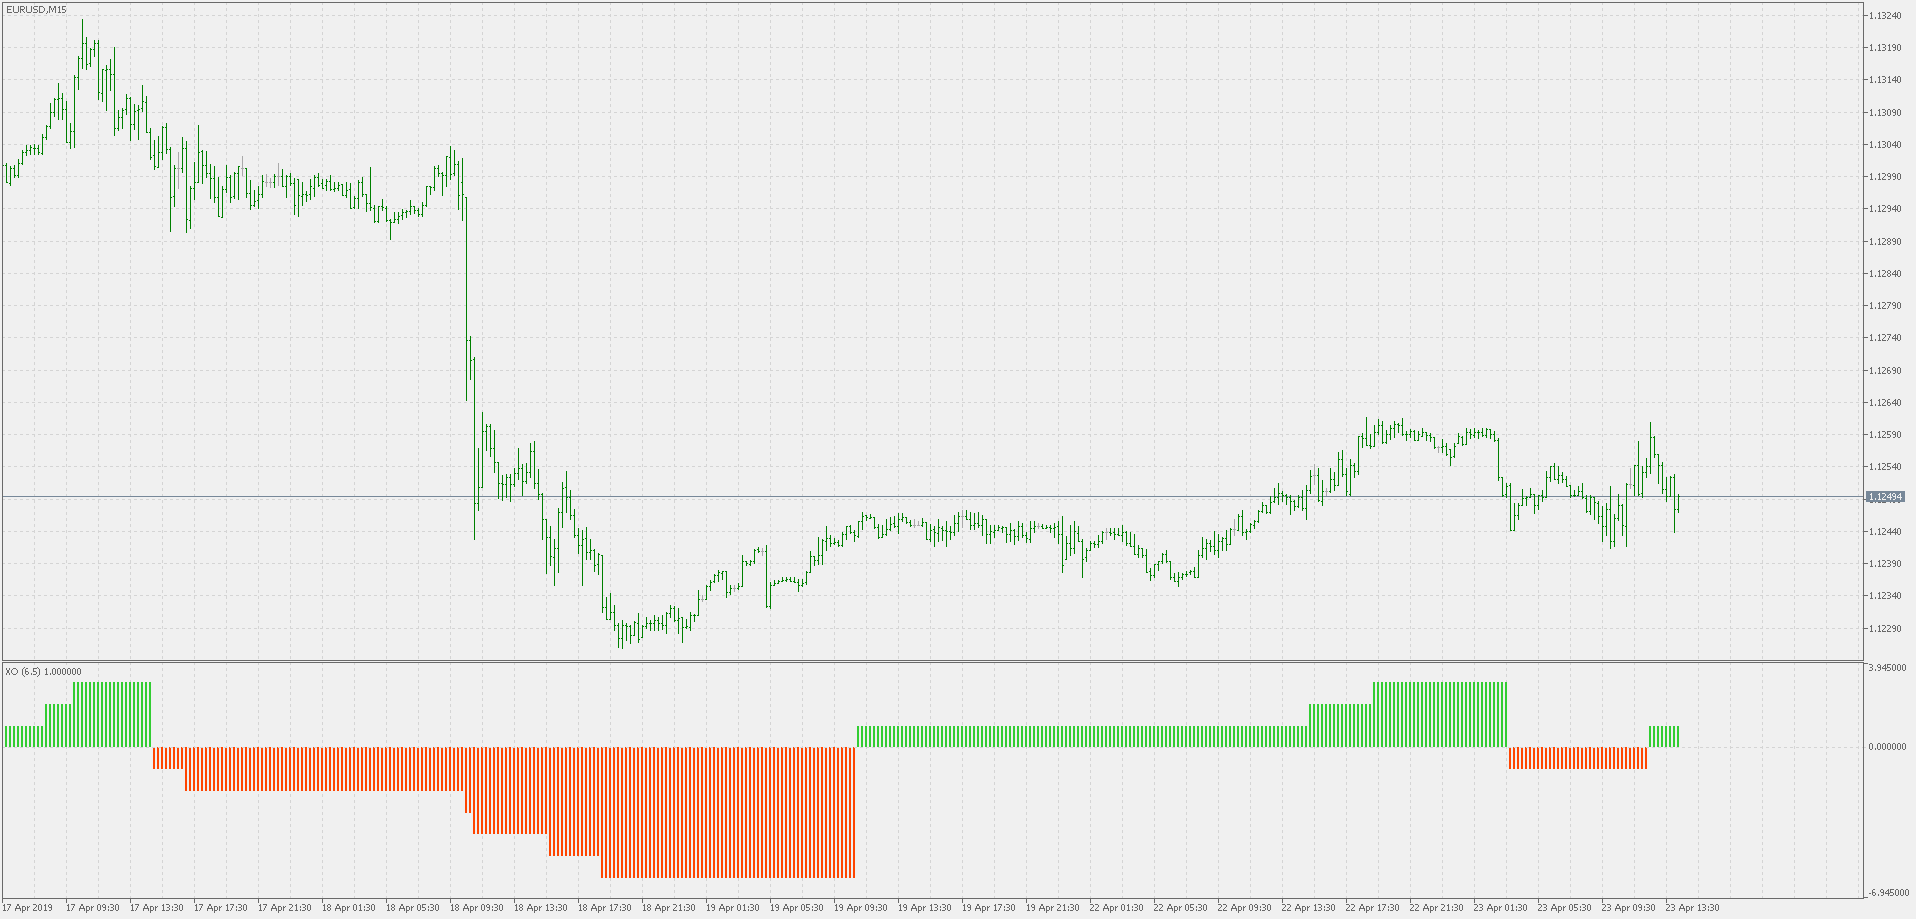 FX MAX with XO Trading System » Free MT4 Indicators [mq4 & ex4] » blogger.com